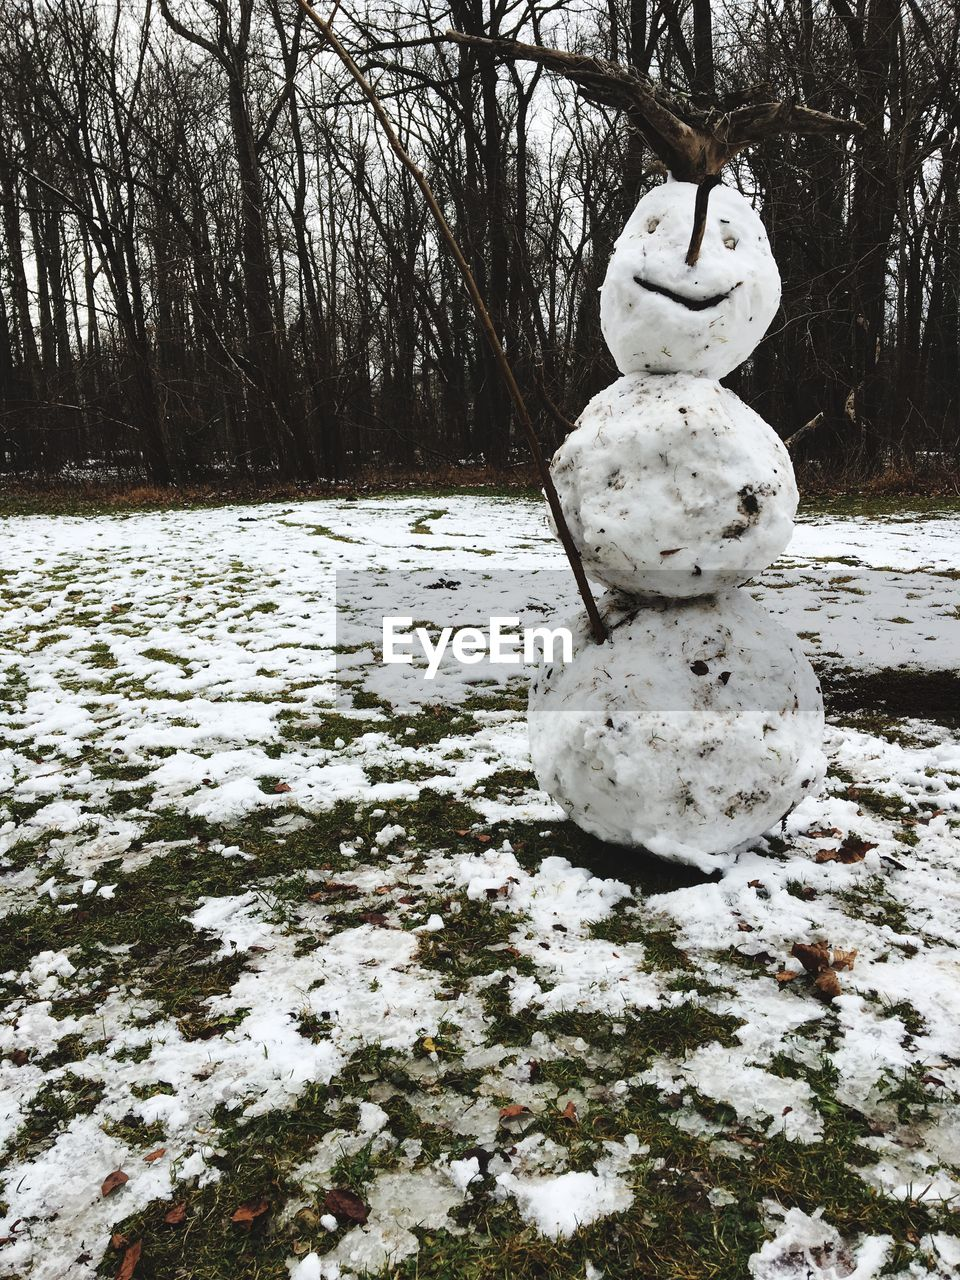 snow, winter, cold temperature, weather, tree, snowman, human representation, nature, outdoors, field, day, no people, statue, bare tree, frozen, beauty in nature, sculpture, anthropomorphic face, branch, warm clothing, close-up